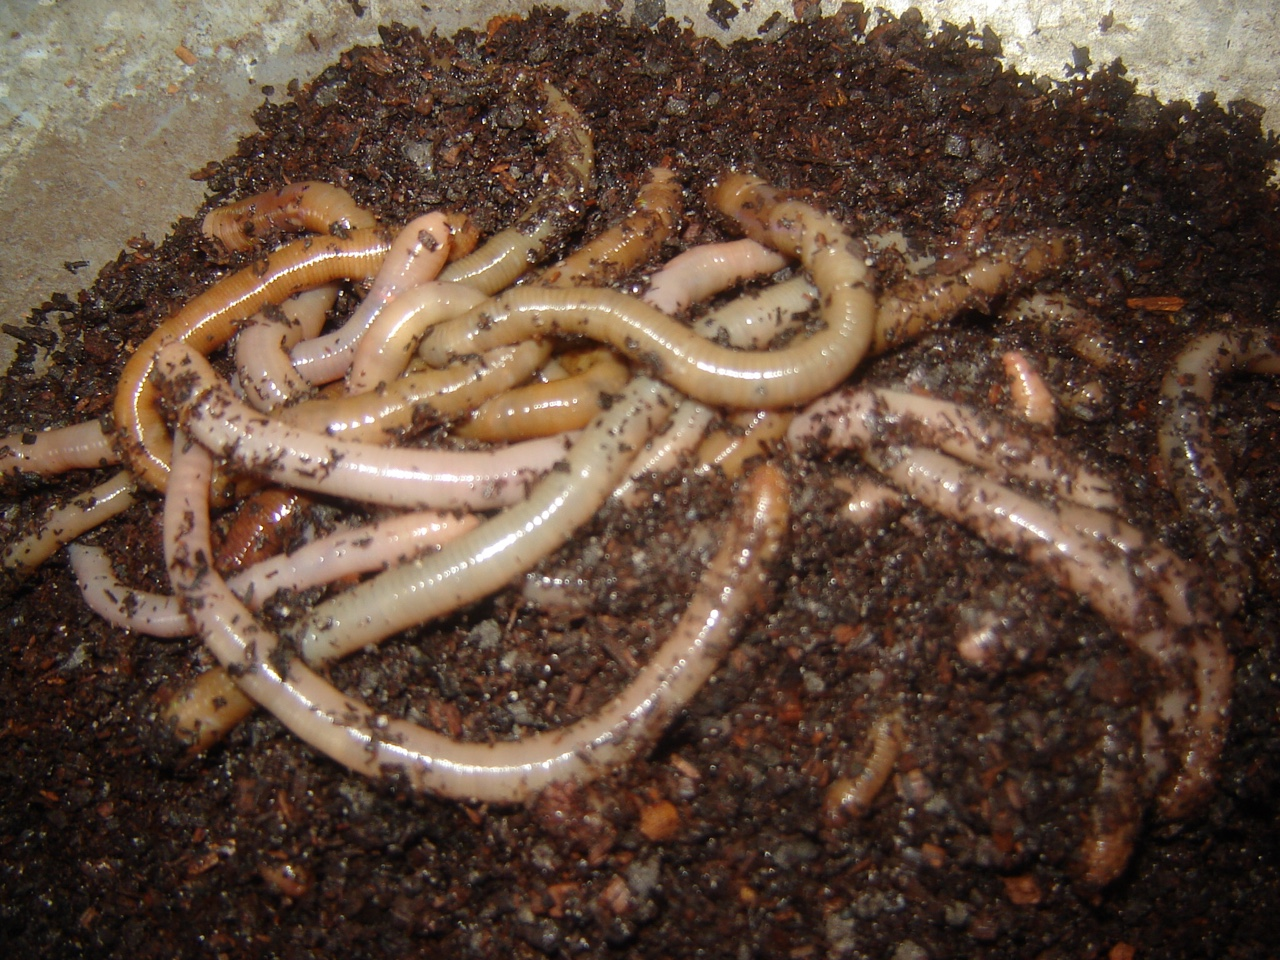 Worms are a decomposer to my